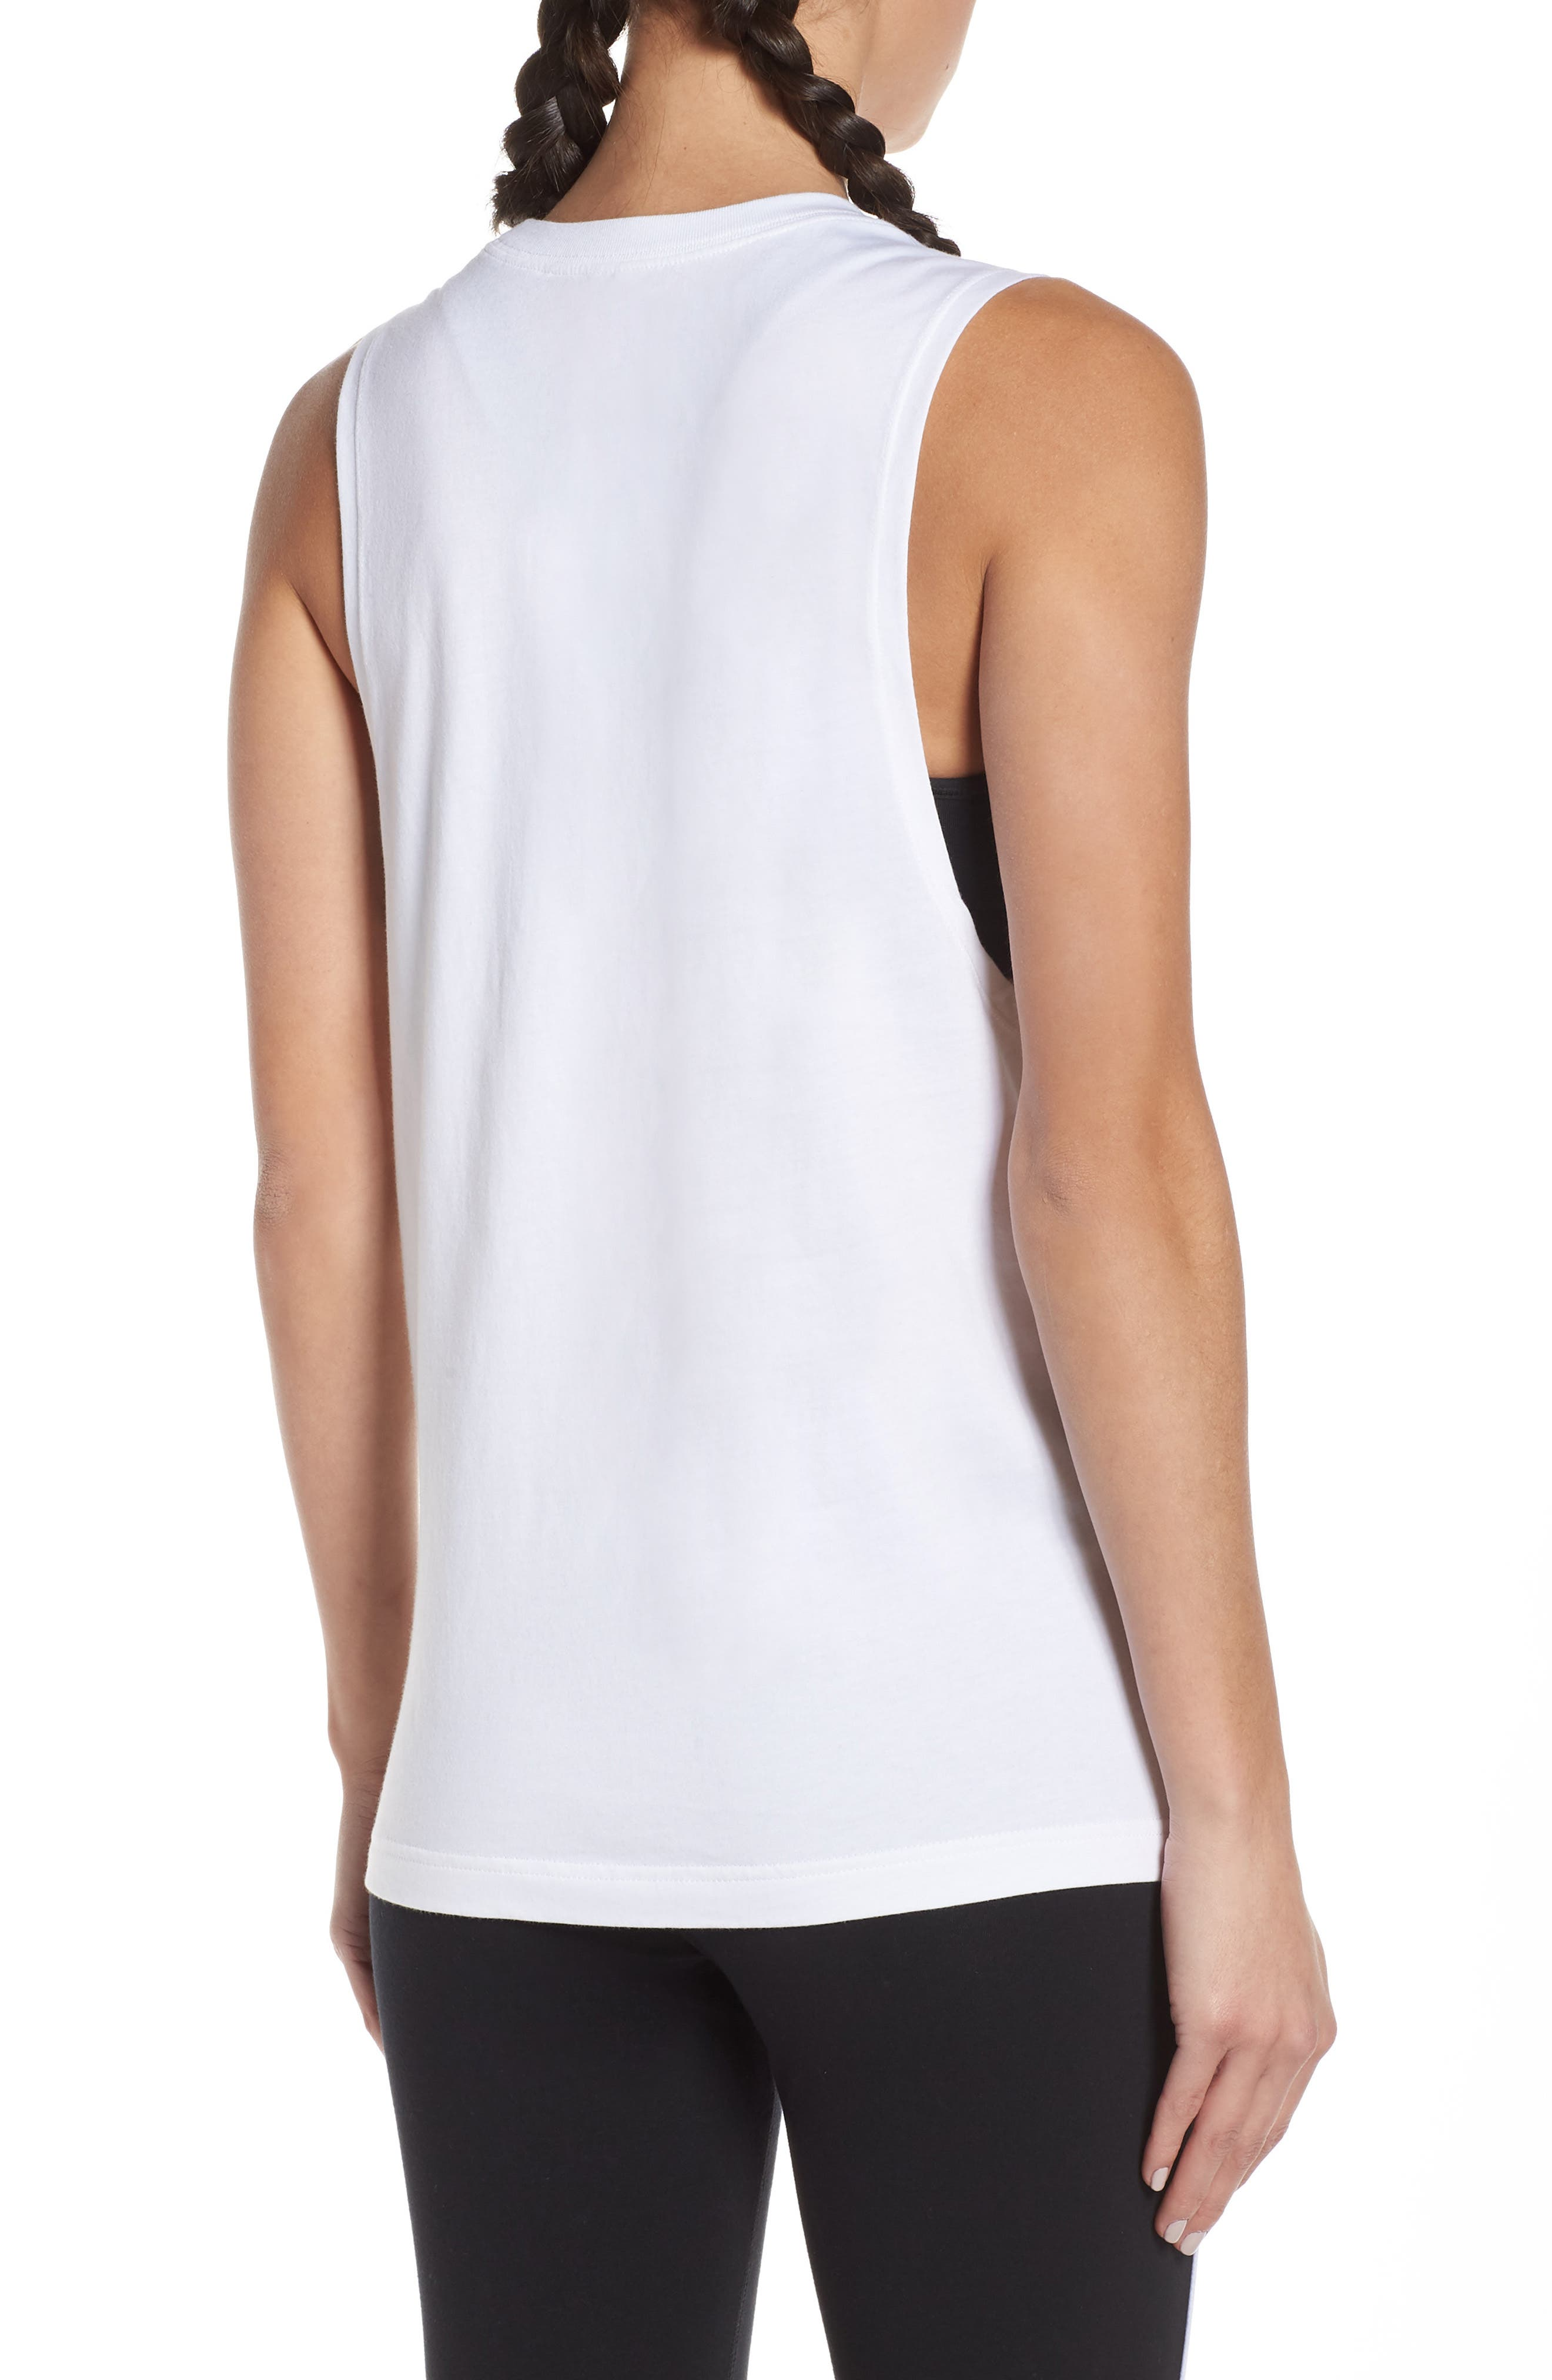 35b68c8adcaf Nike Tank Tops for Women